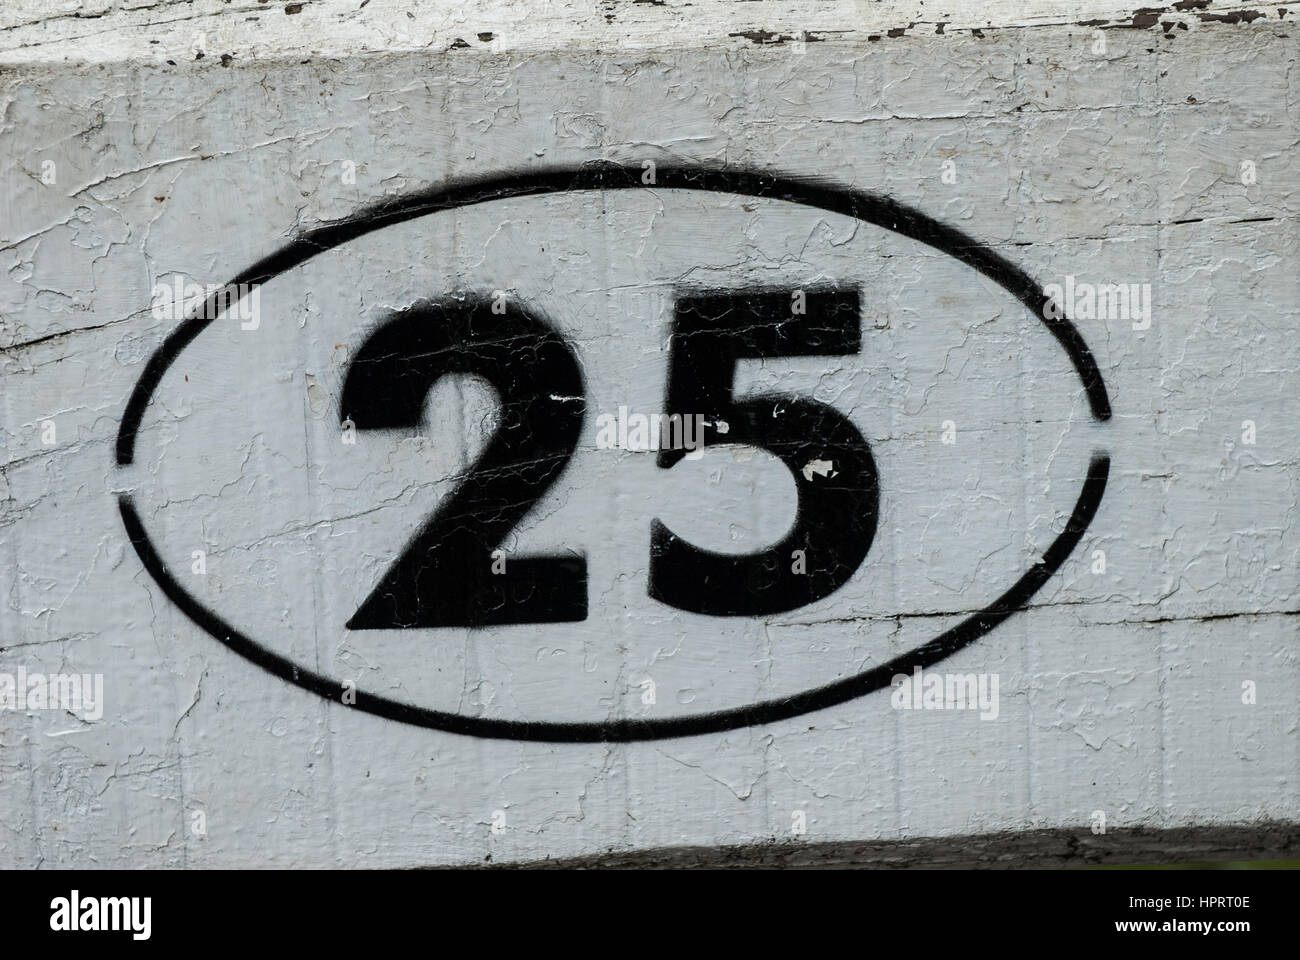 The number 25 black on white in an oval border painted against a white wooden background. - Stock Image